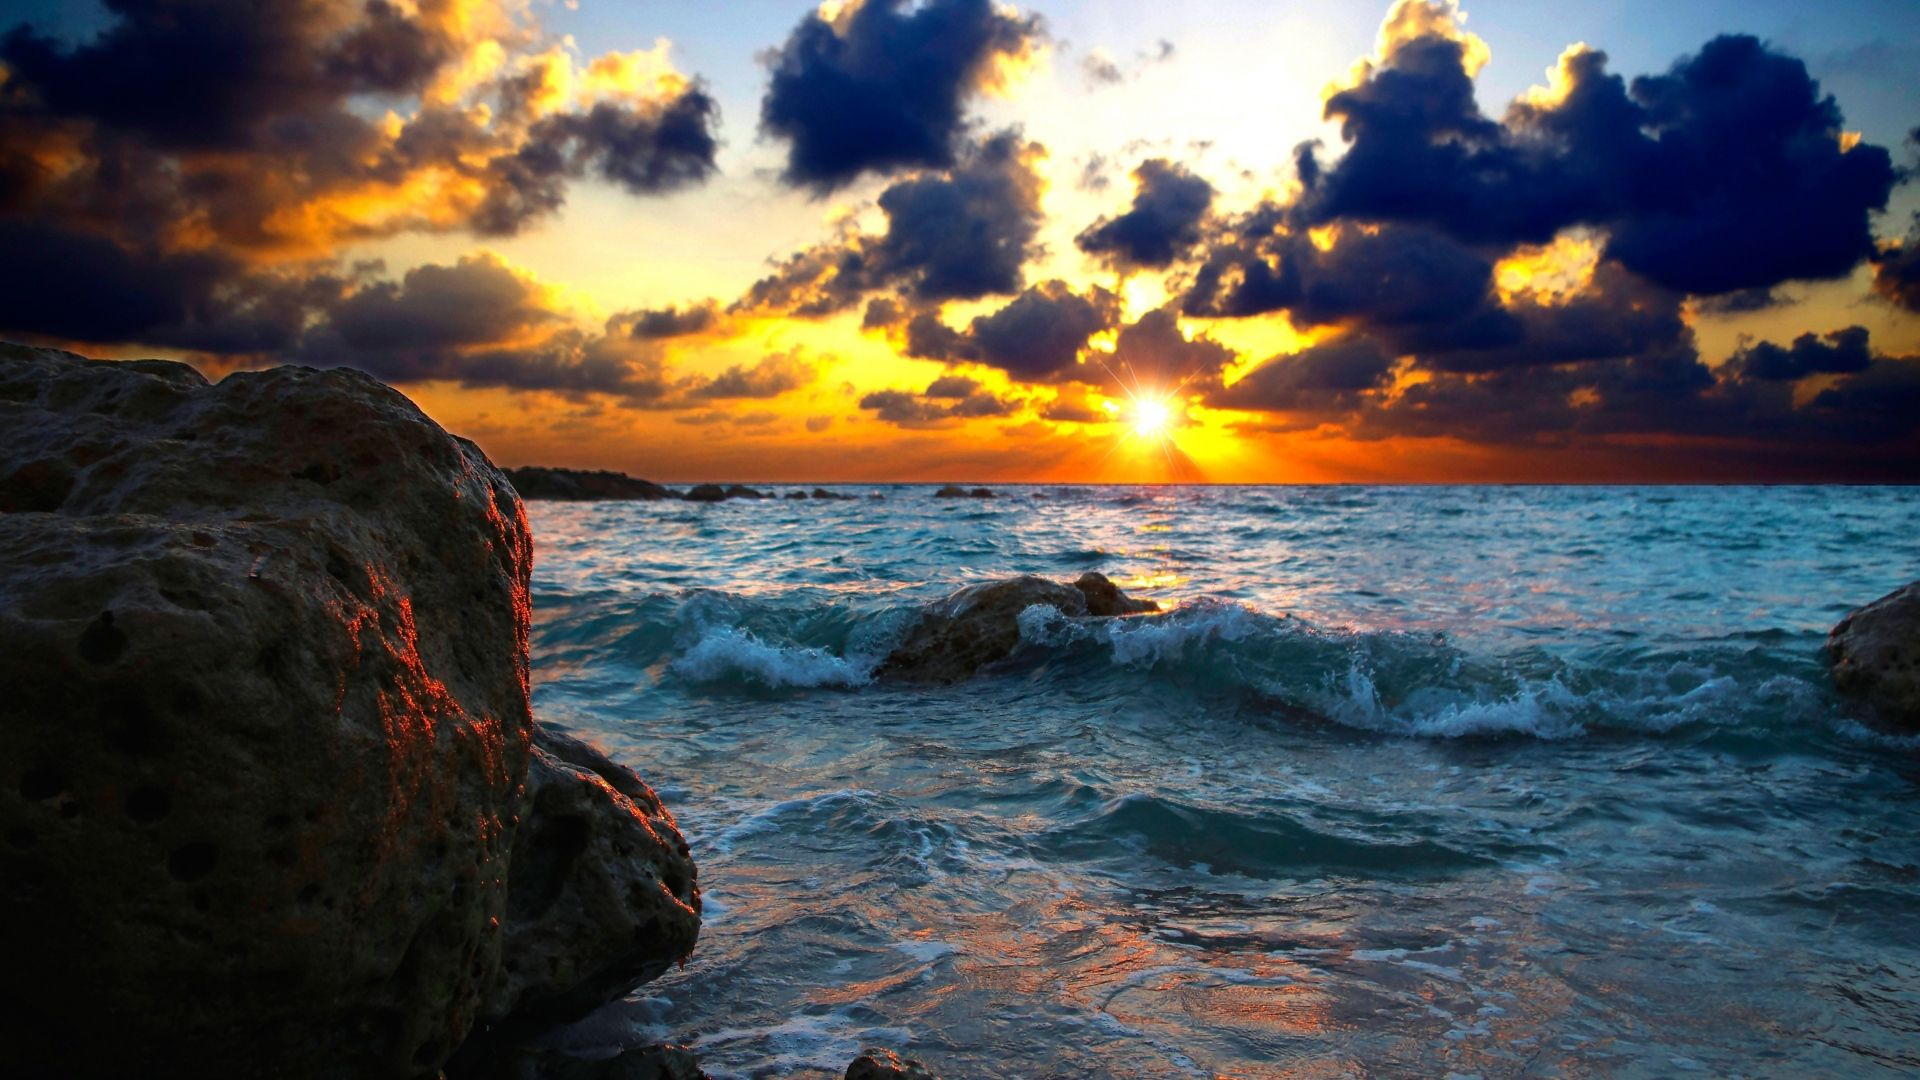 1920x1080 Hd Sunset: Download Wallpaper 1920x1080 Sea, Surf, Sunset, Stones